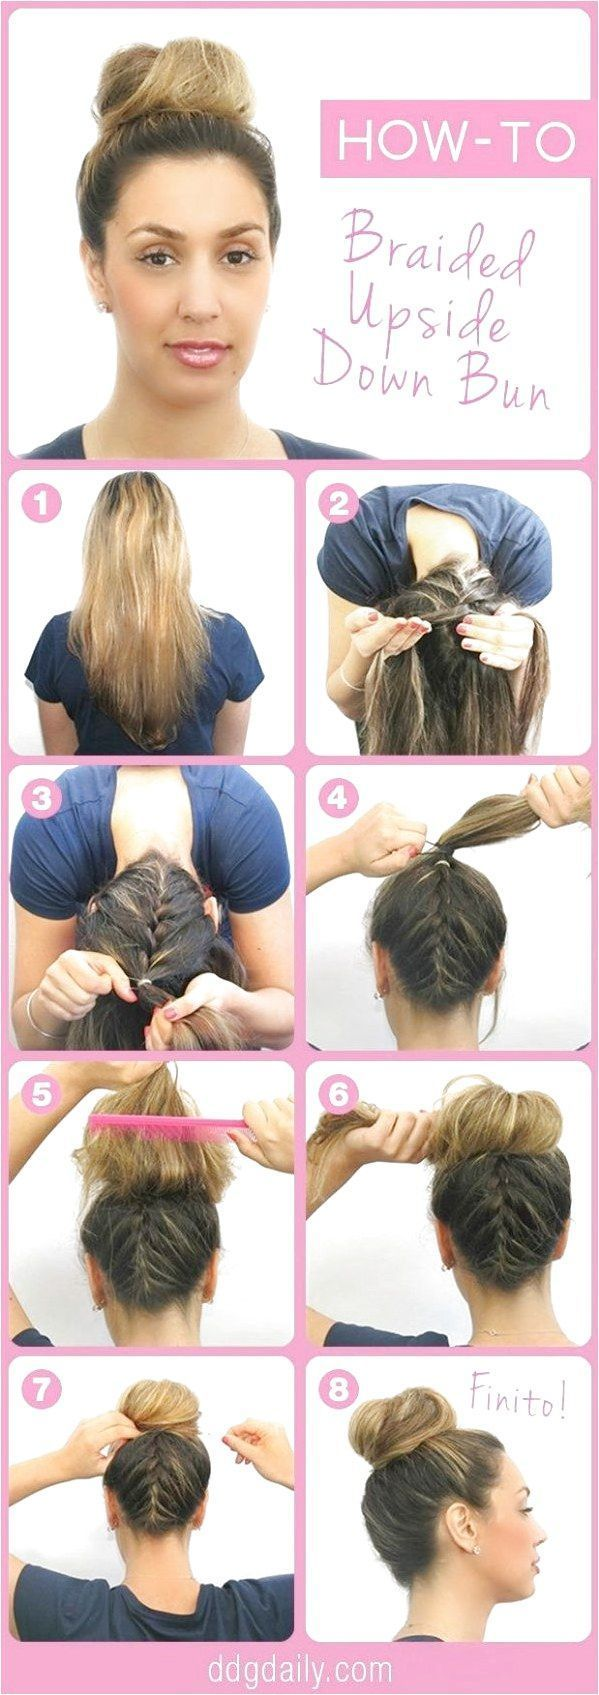 Beauty How-To Upside Down Braided Bun  If you know how to French braid your hai …   – Braid Recipes